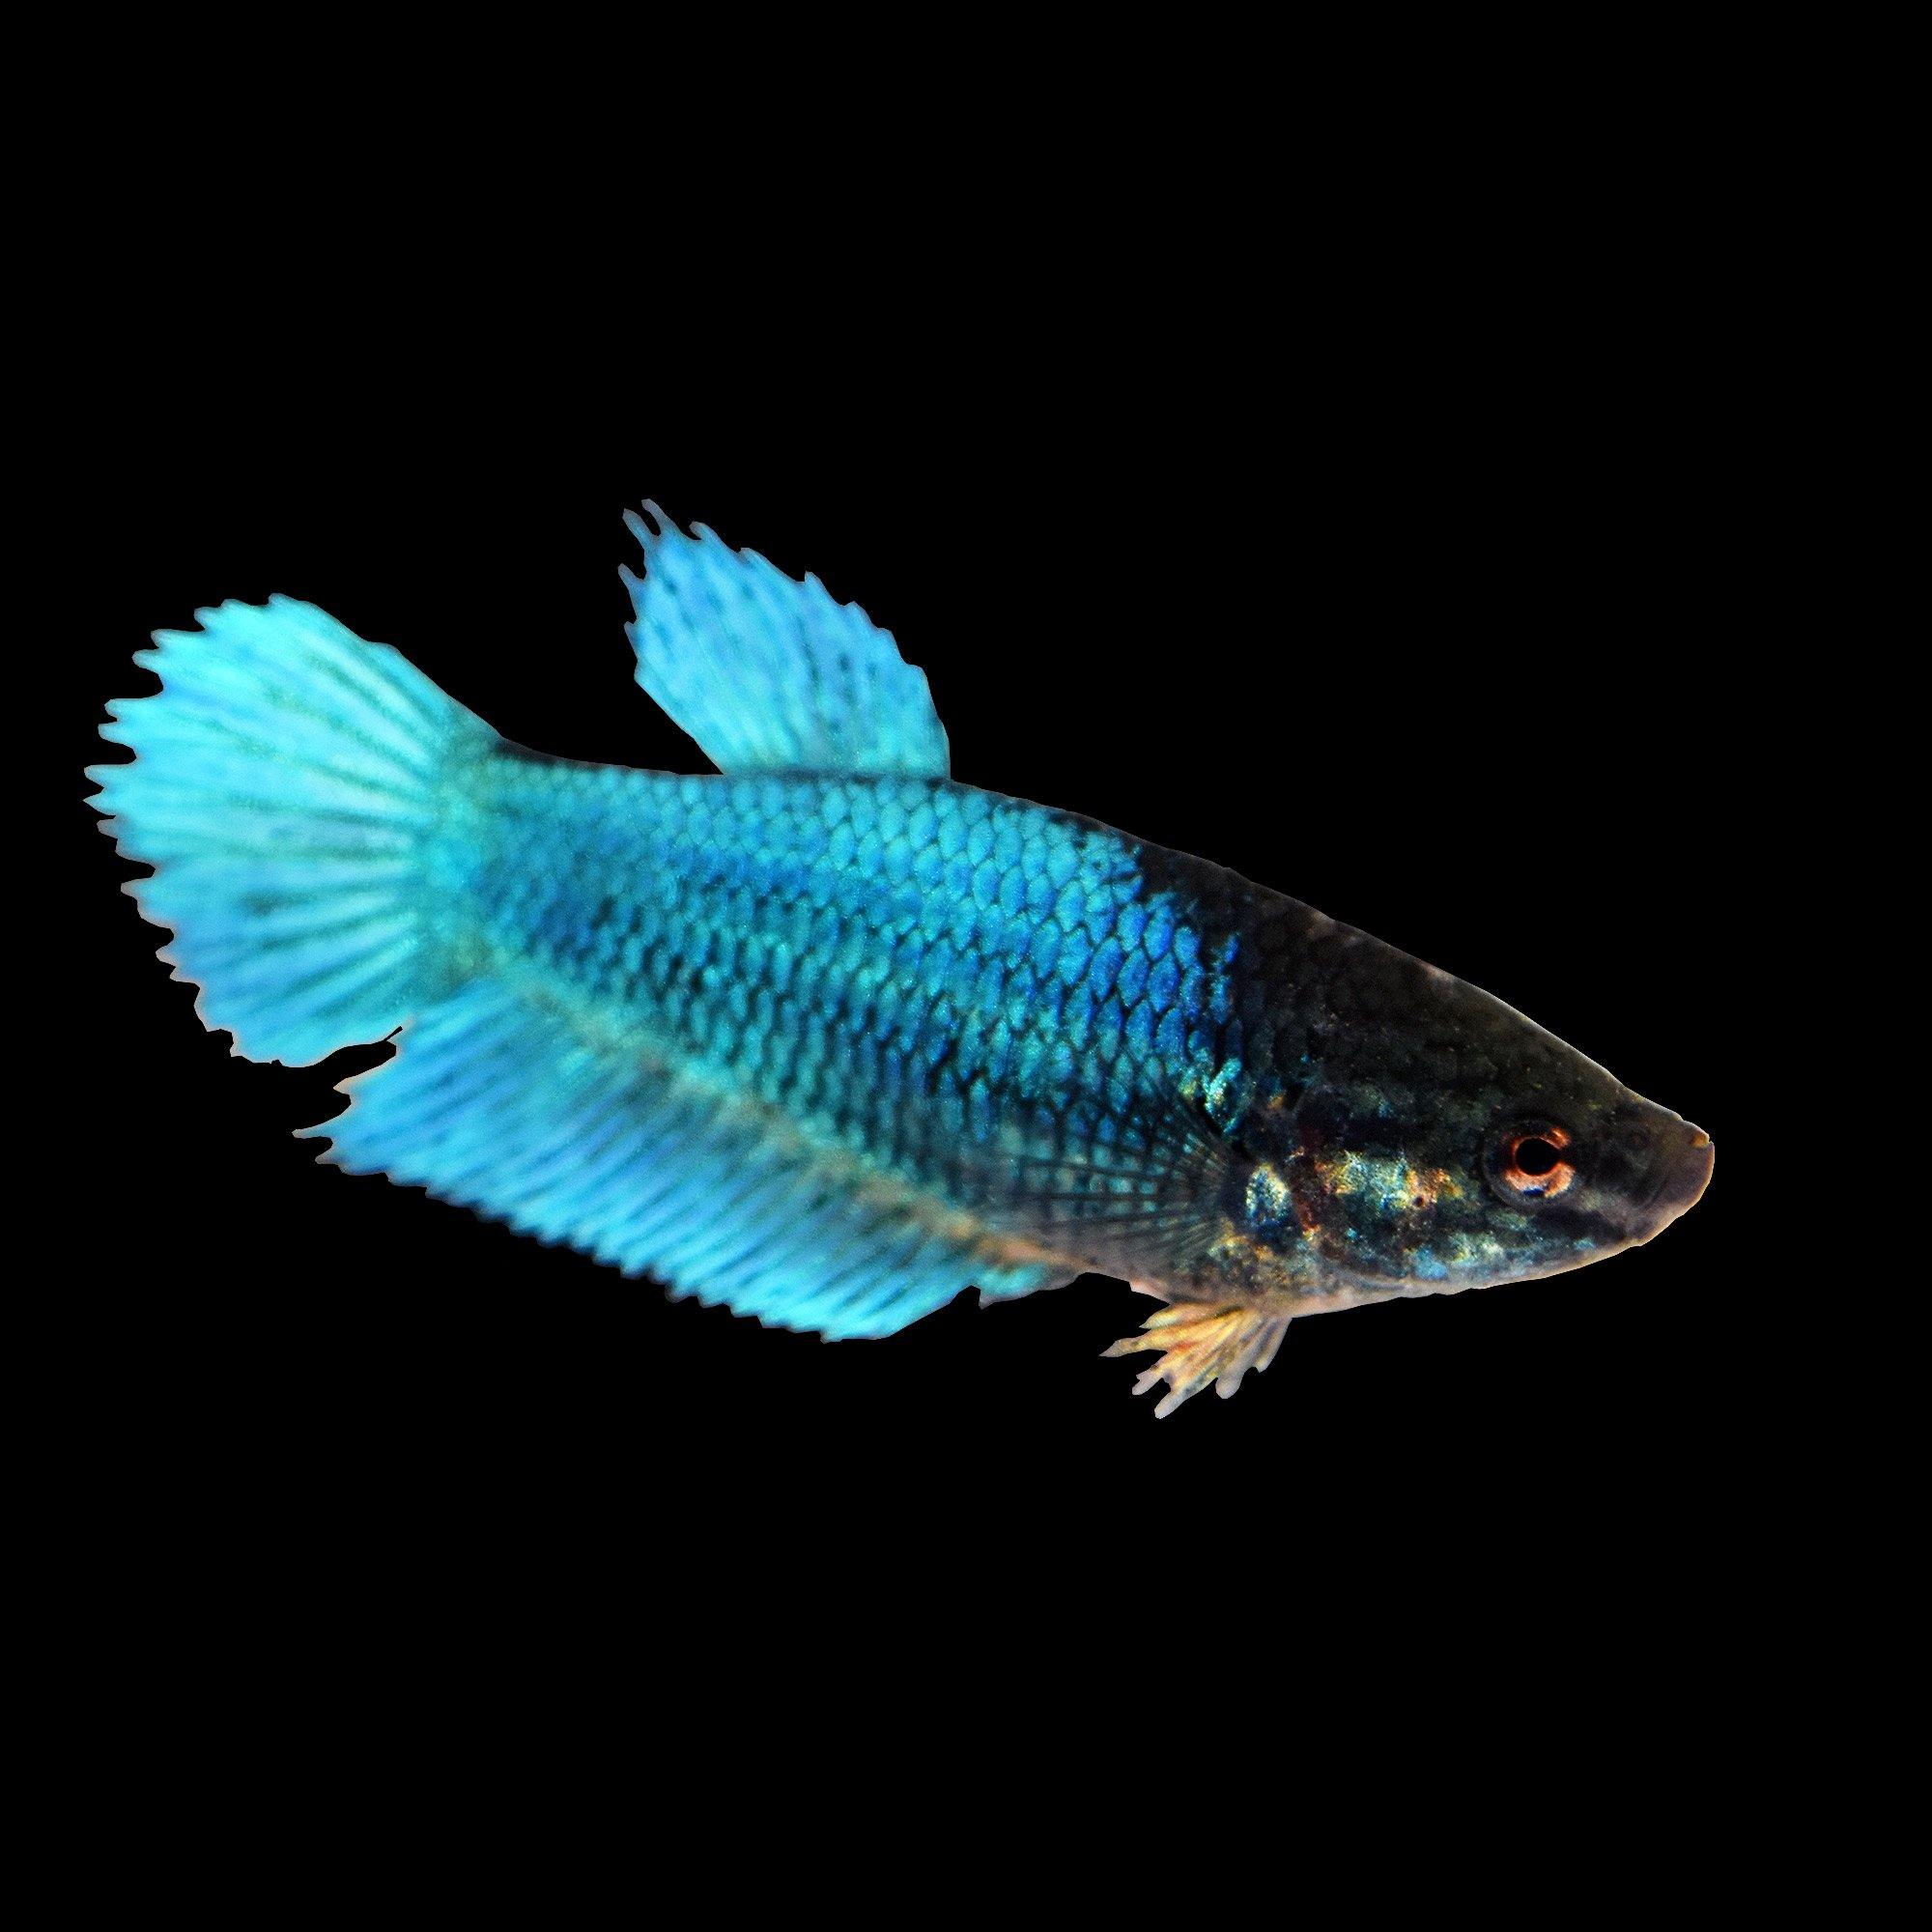 Blue female veiltail betta fish petco for Betta fish tanks petco